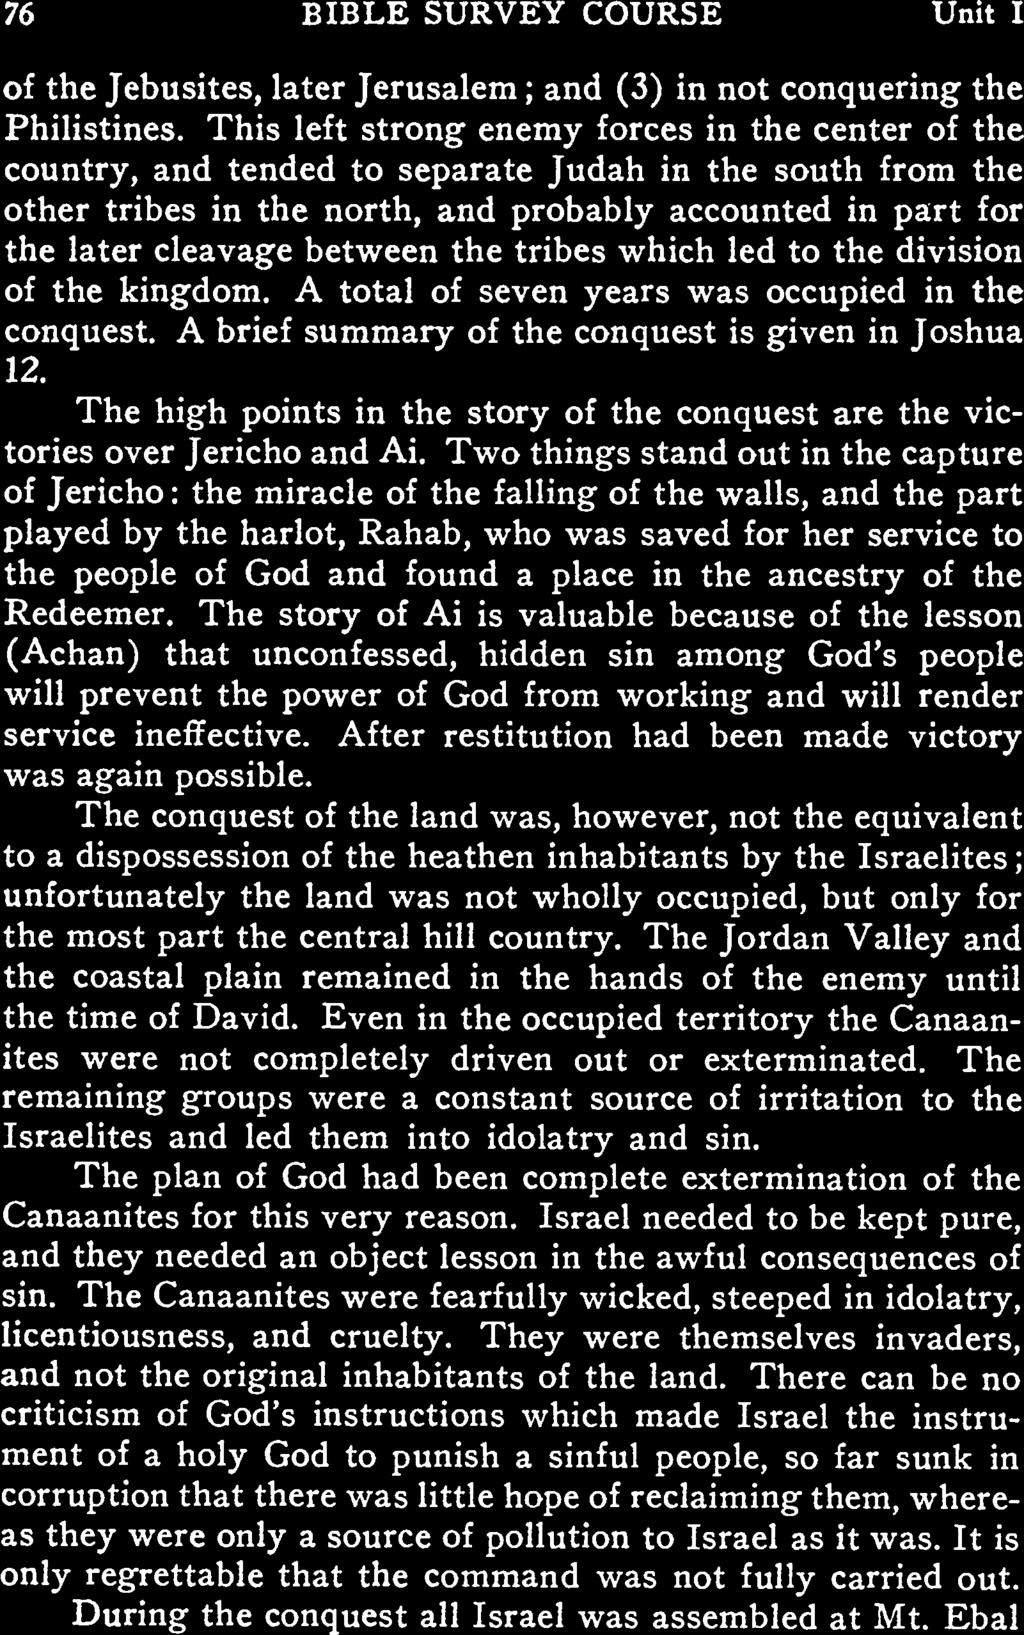 76 BIBLE SURVEY COURSE Unit I of the Jebusites, lter Jeruslem ; nd (3) in not conquering the Philistines.